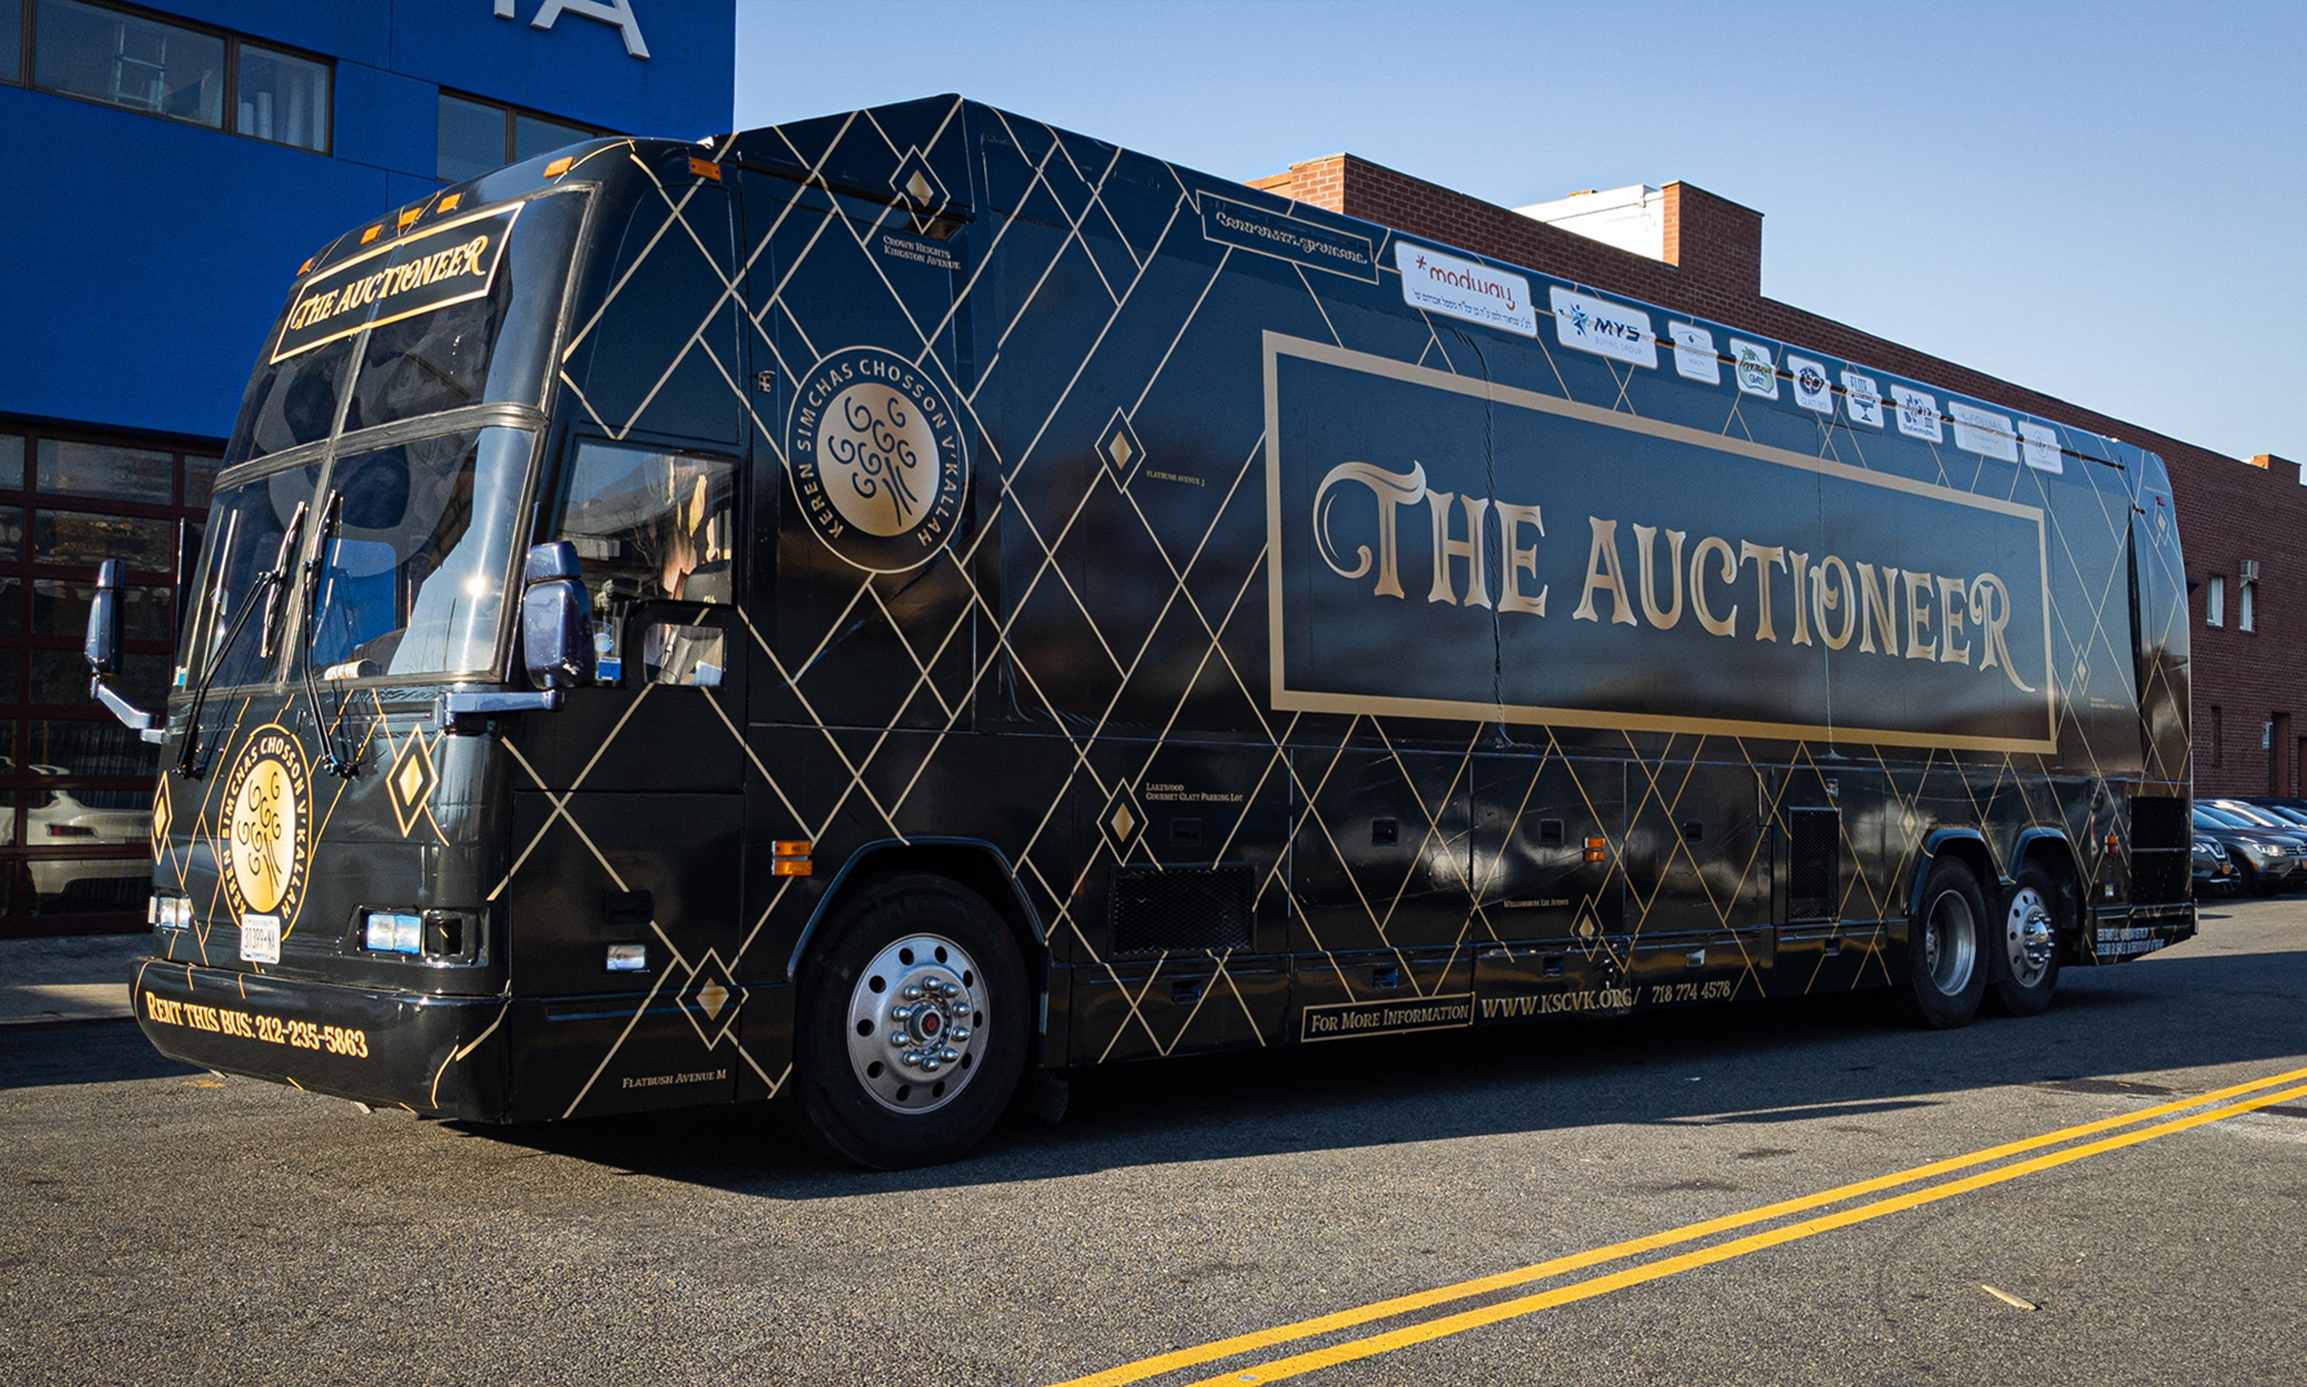 The Auctioneer / Annual Auction Bus Wrap Design